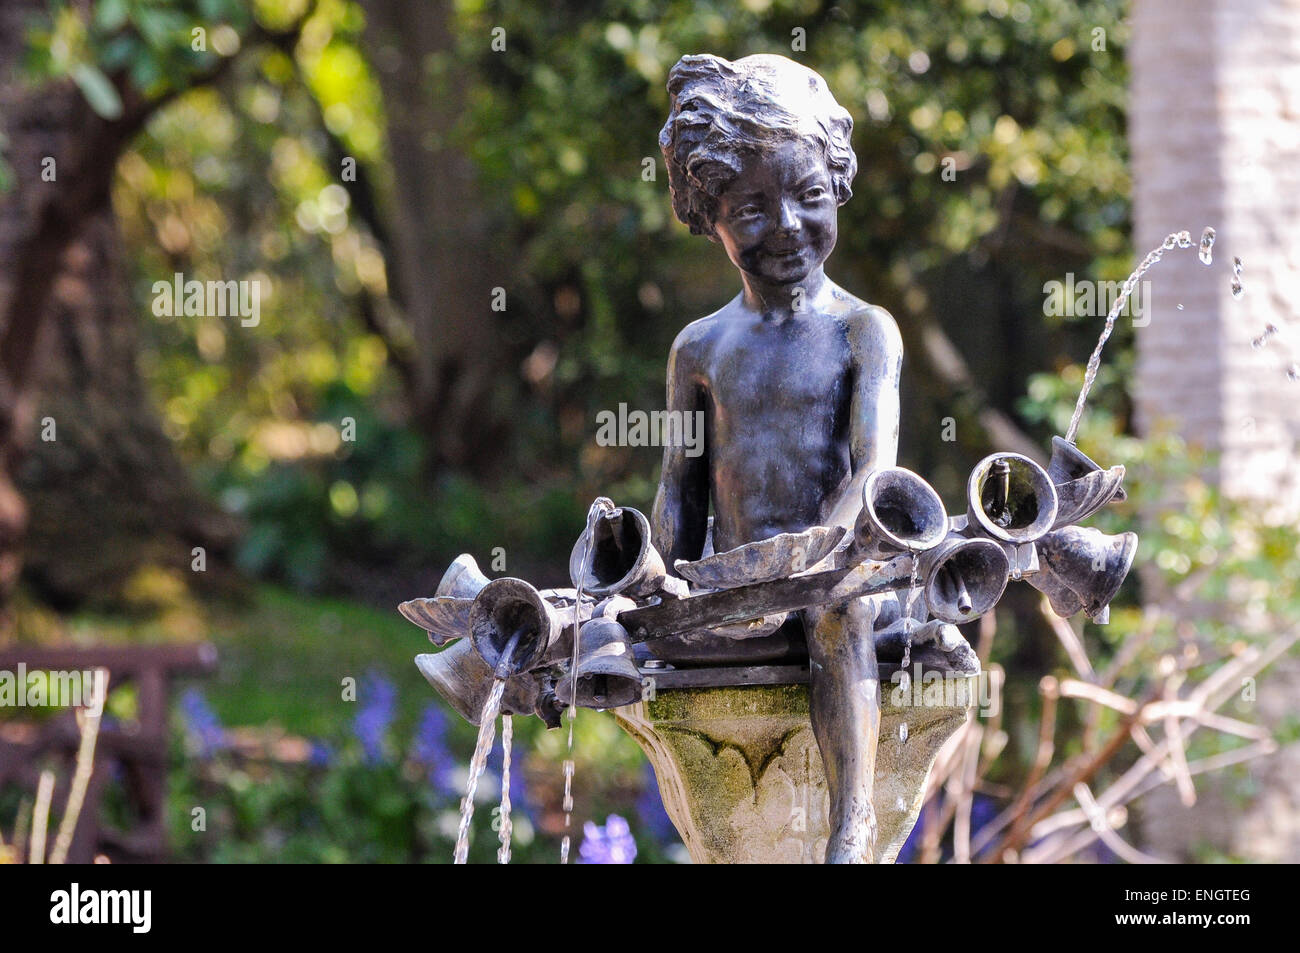 Bronze water fountain in the shape of a young boy with bells - Stock Image